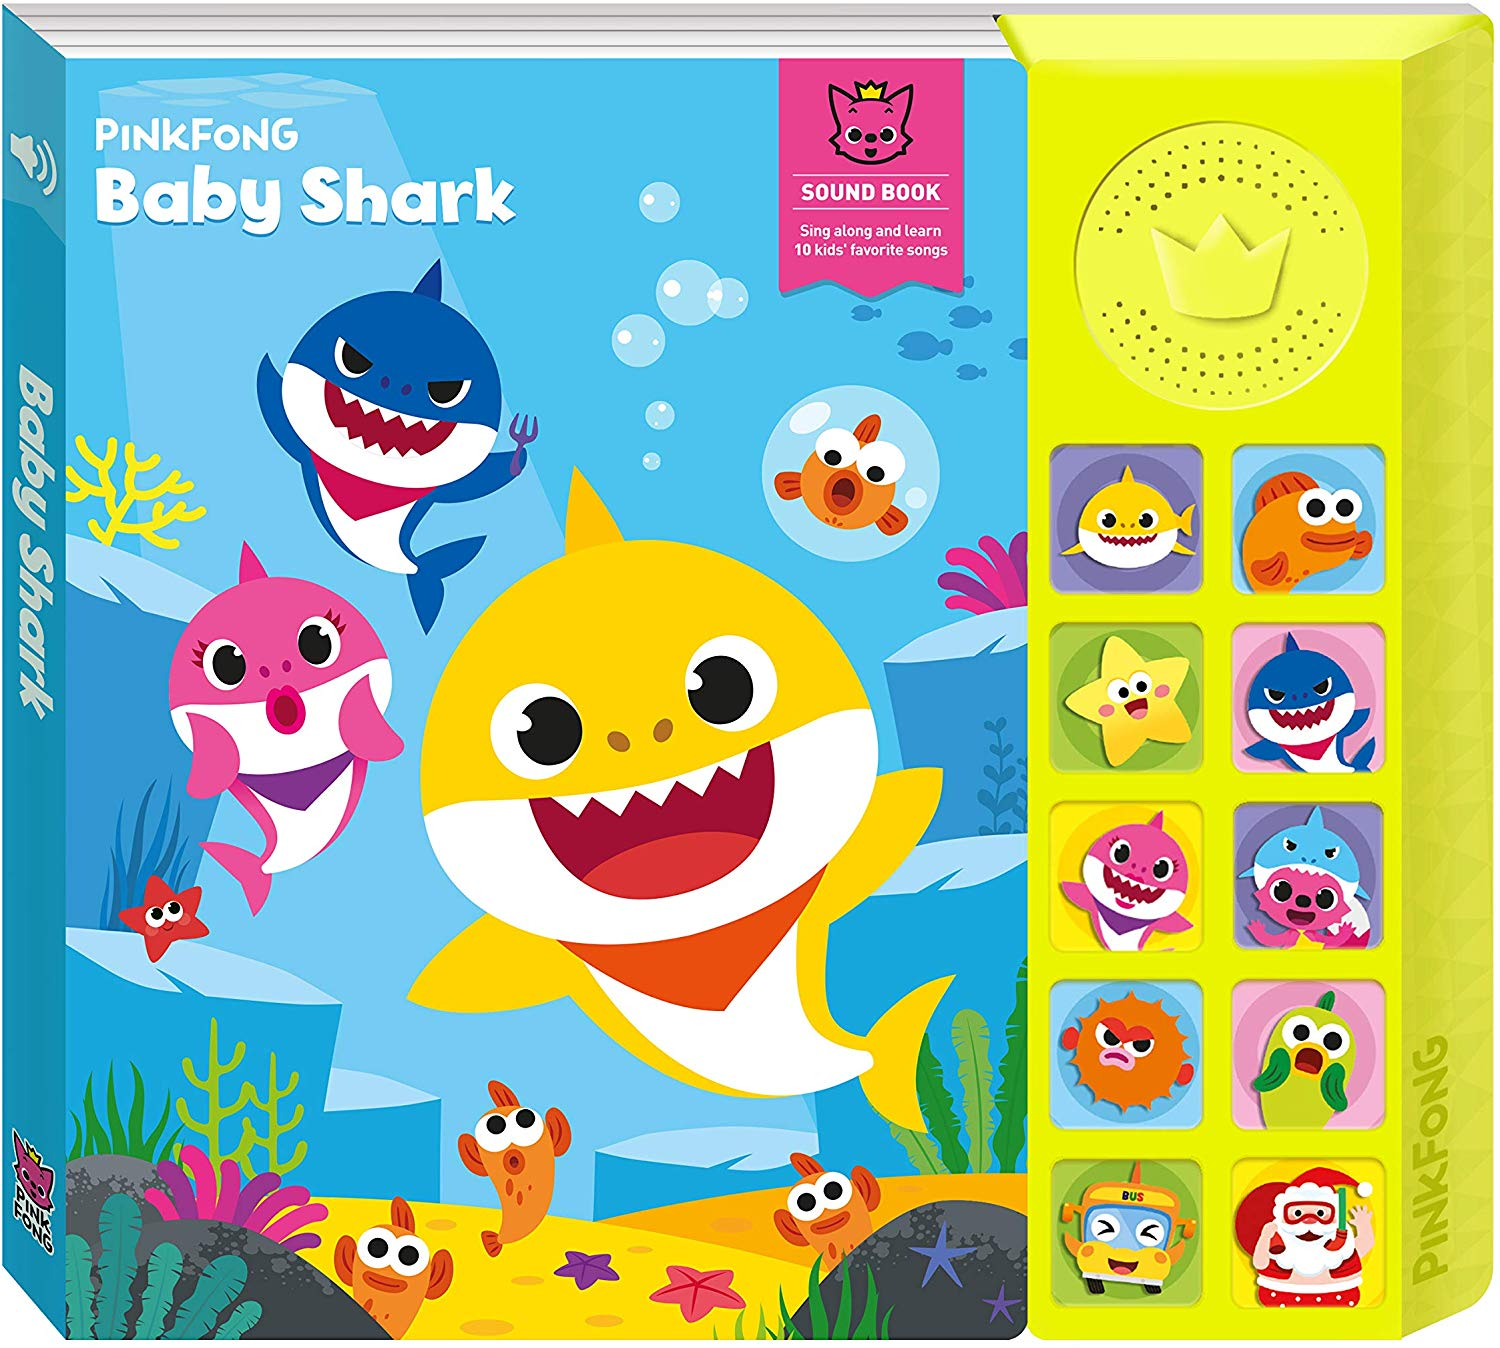 81qV KMGTzL. AC SL1500 - Pinkfong Baby Shark Official Sound Book